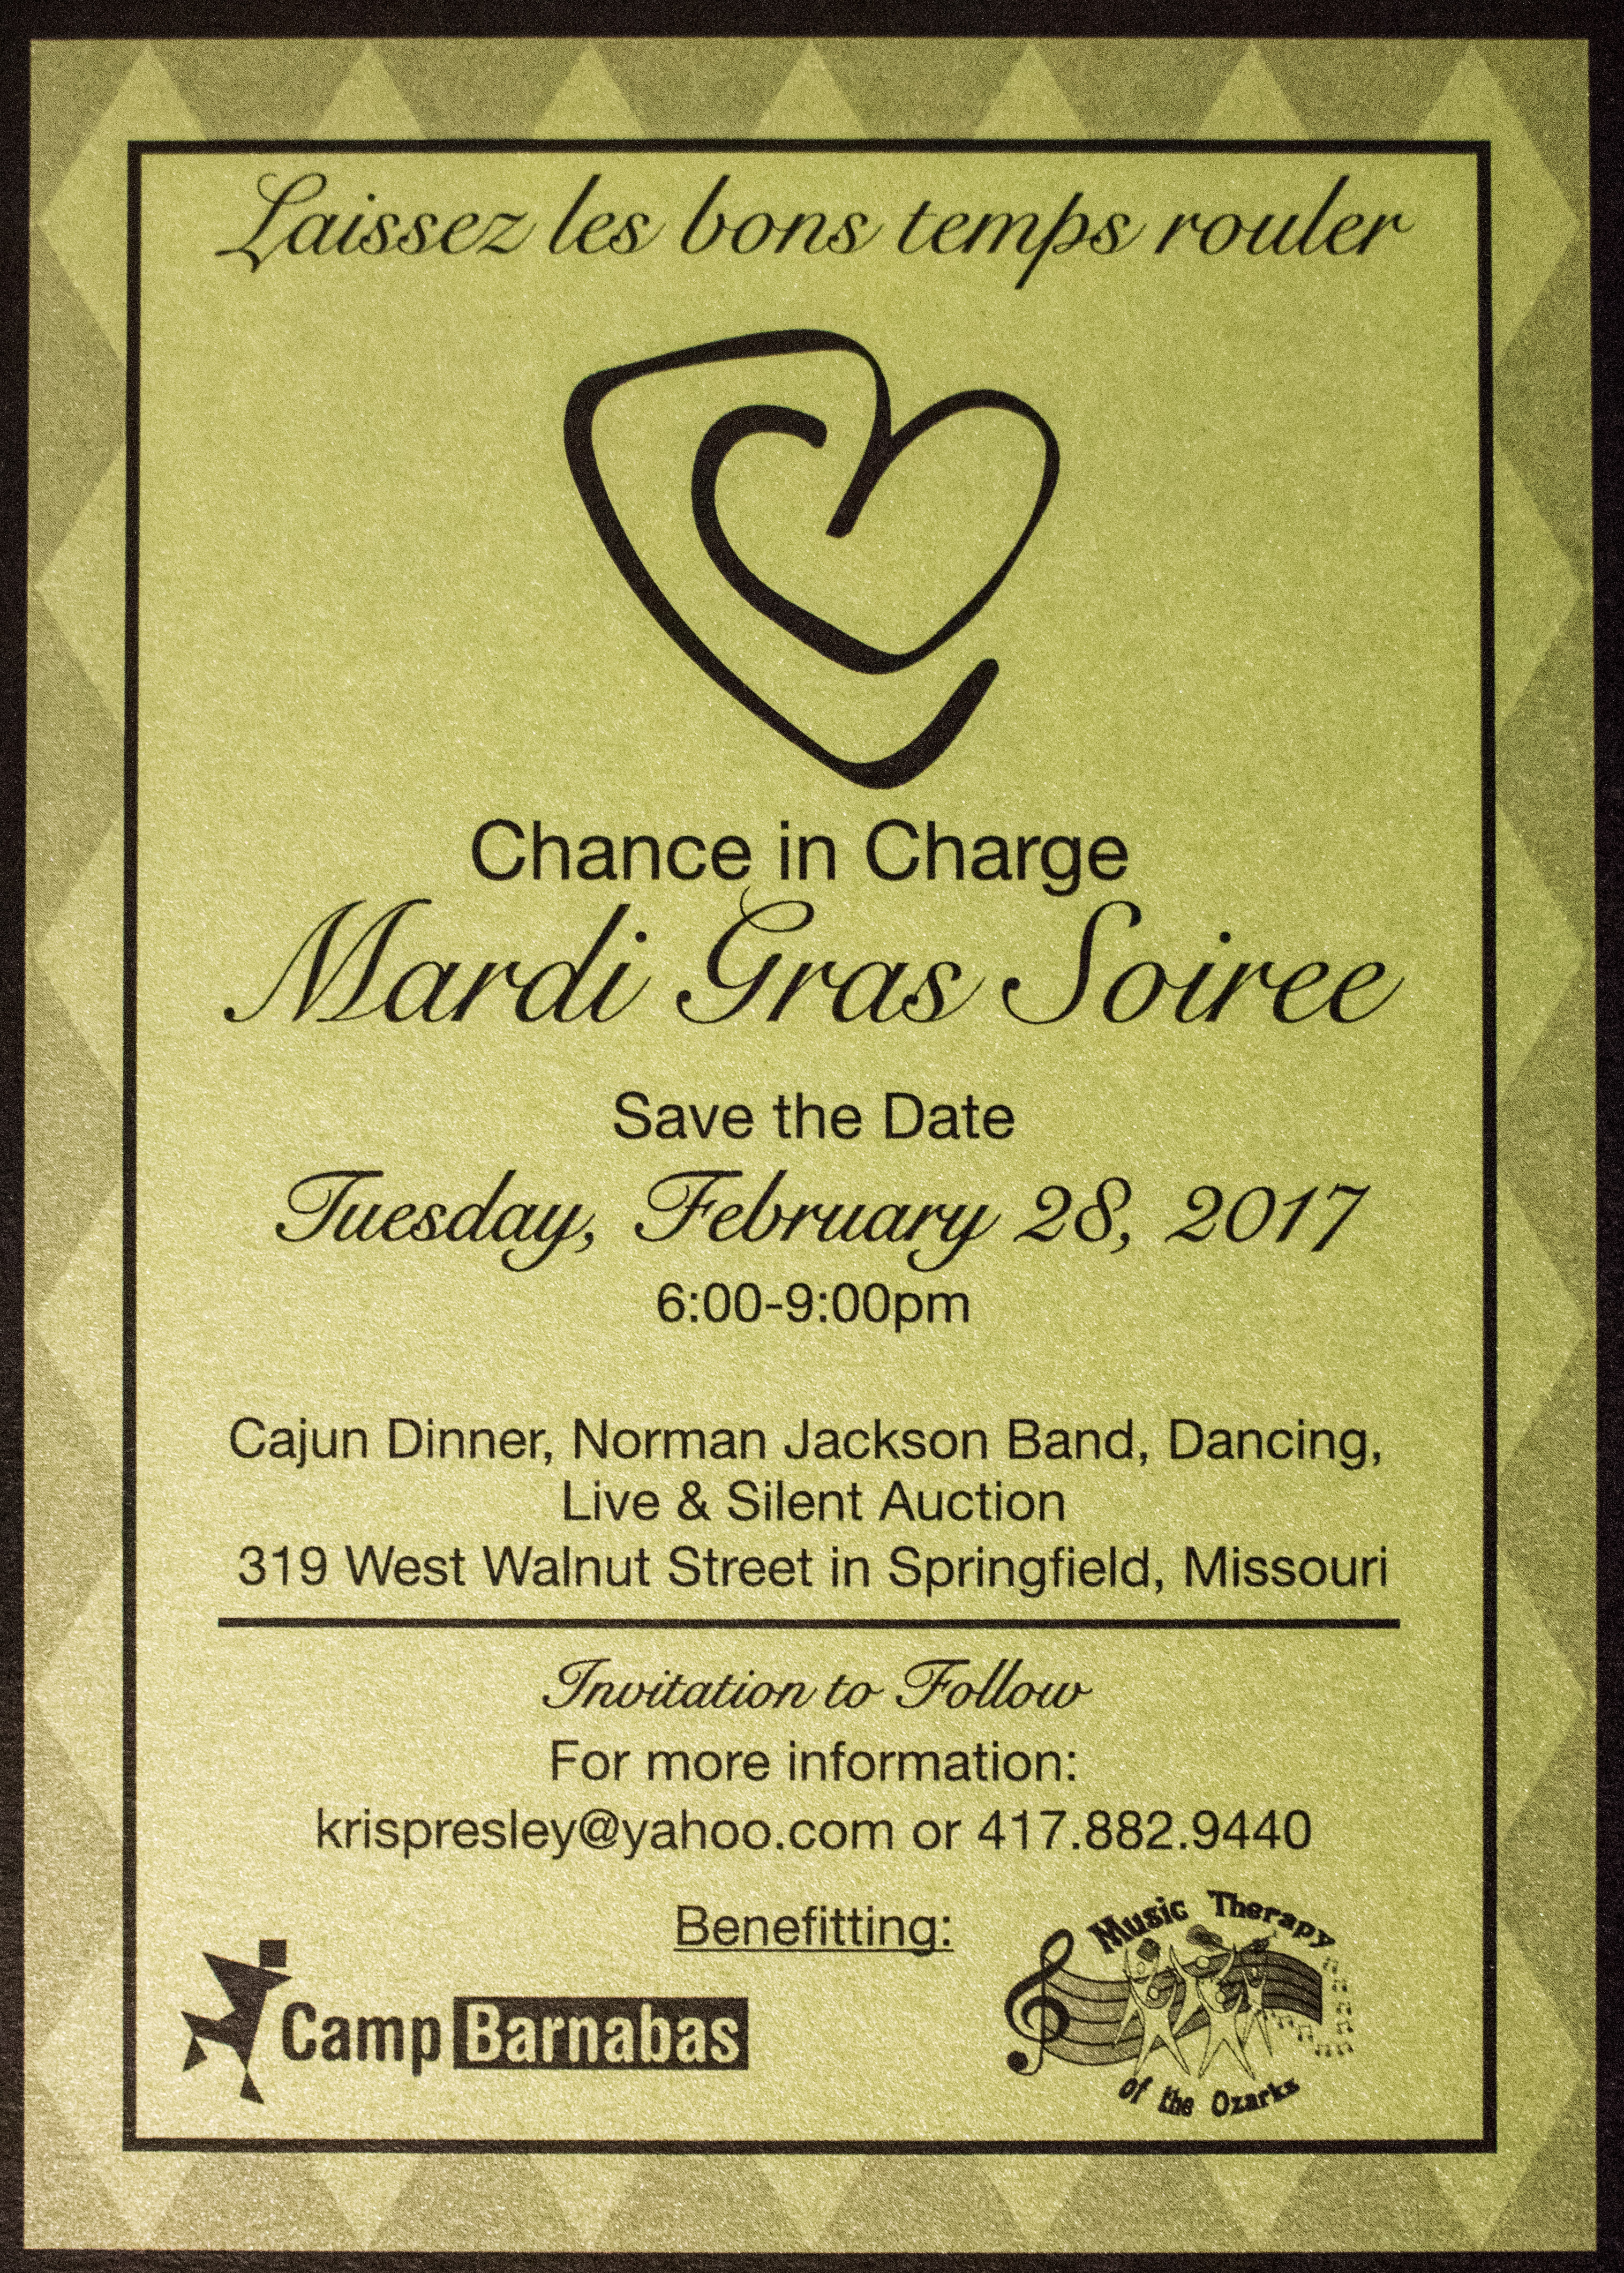 Save the date 2017 our 3rd annual mardi gras soiree music save the date 2017 our 3rd annual mardi gras soiree music therapy of the ozarks monicamarmolfo Choice Image